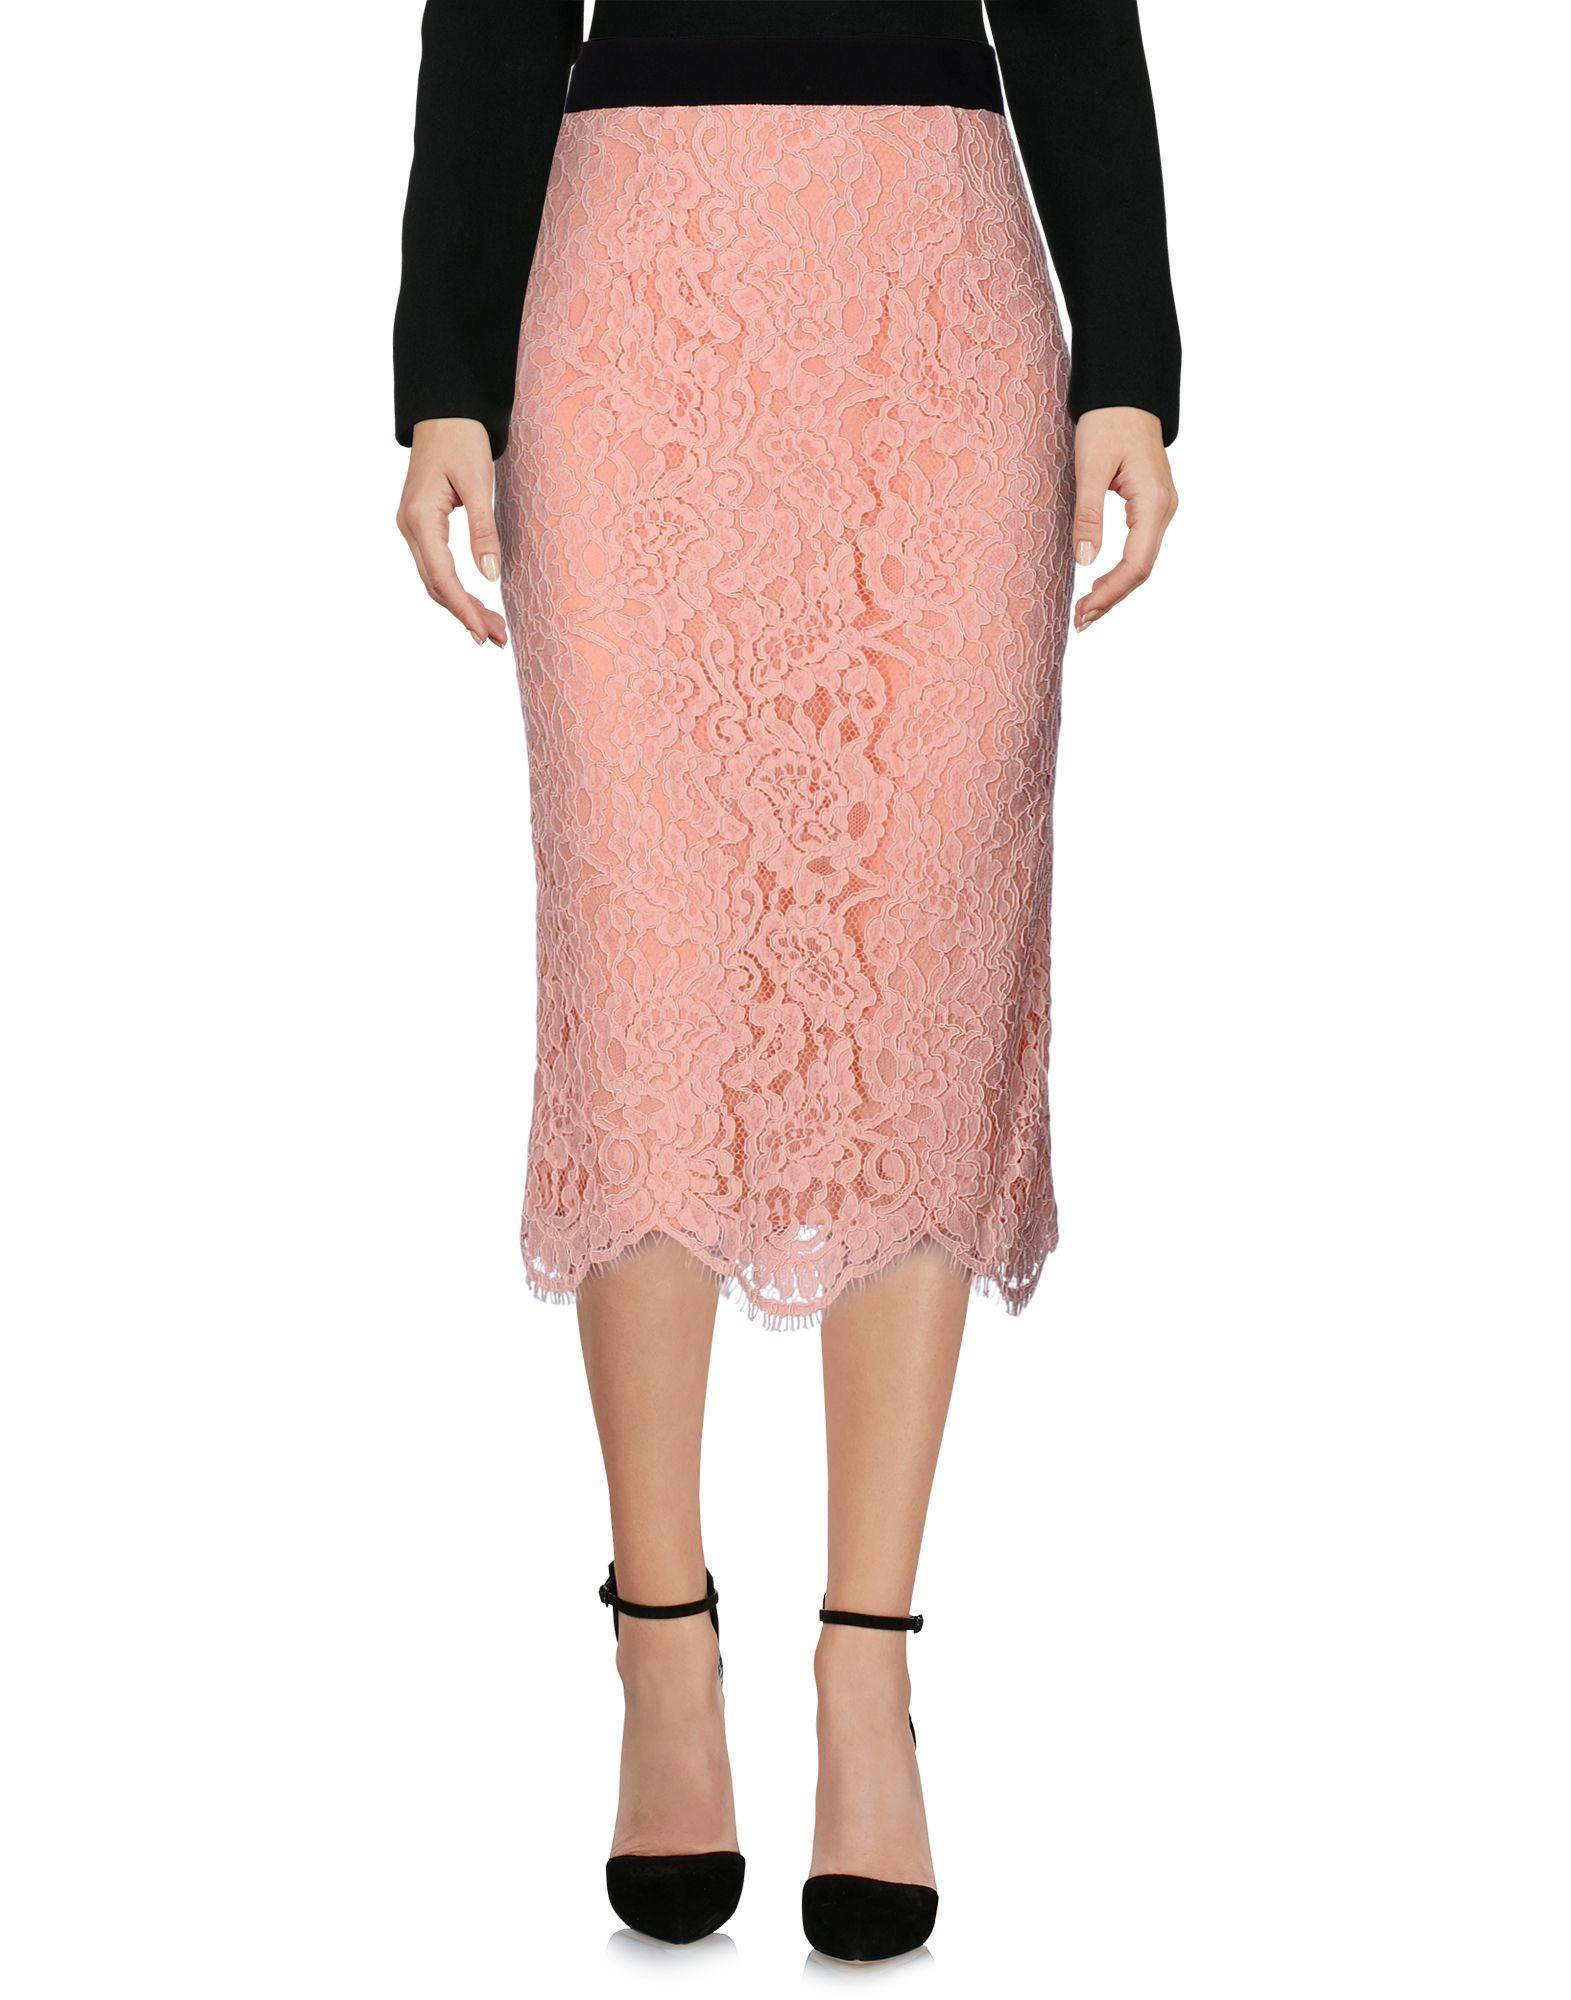 Marco Bologna Midi Skirts In Pink